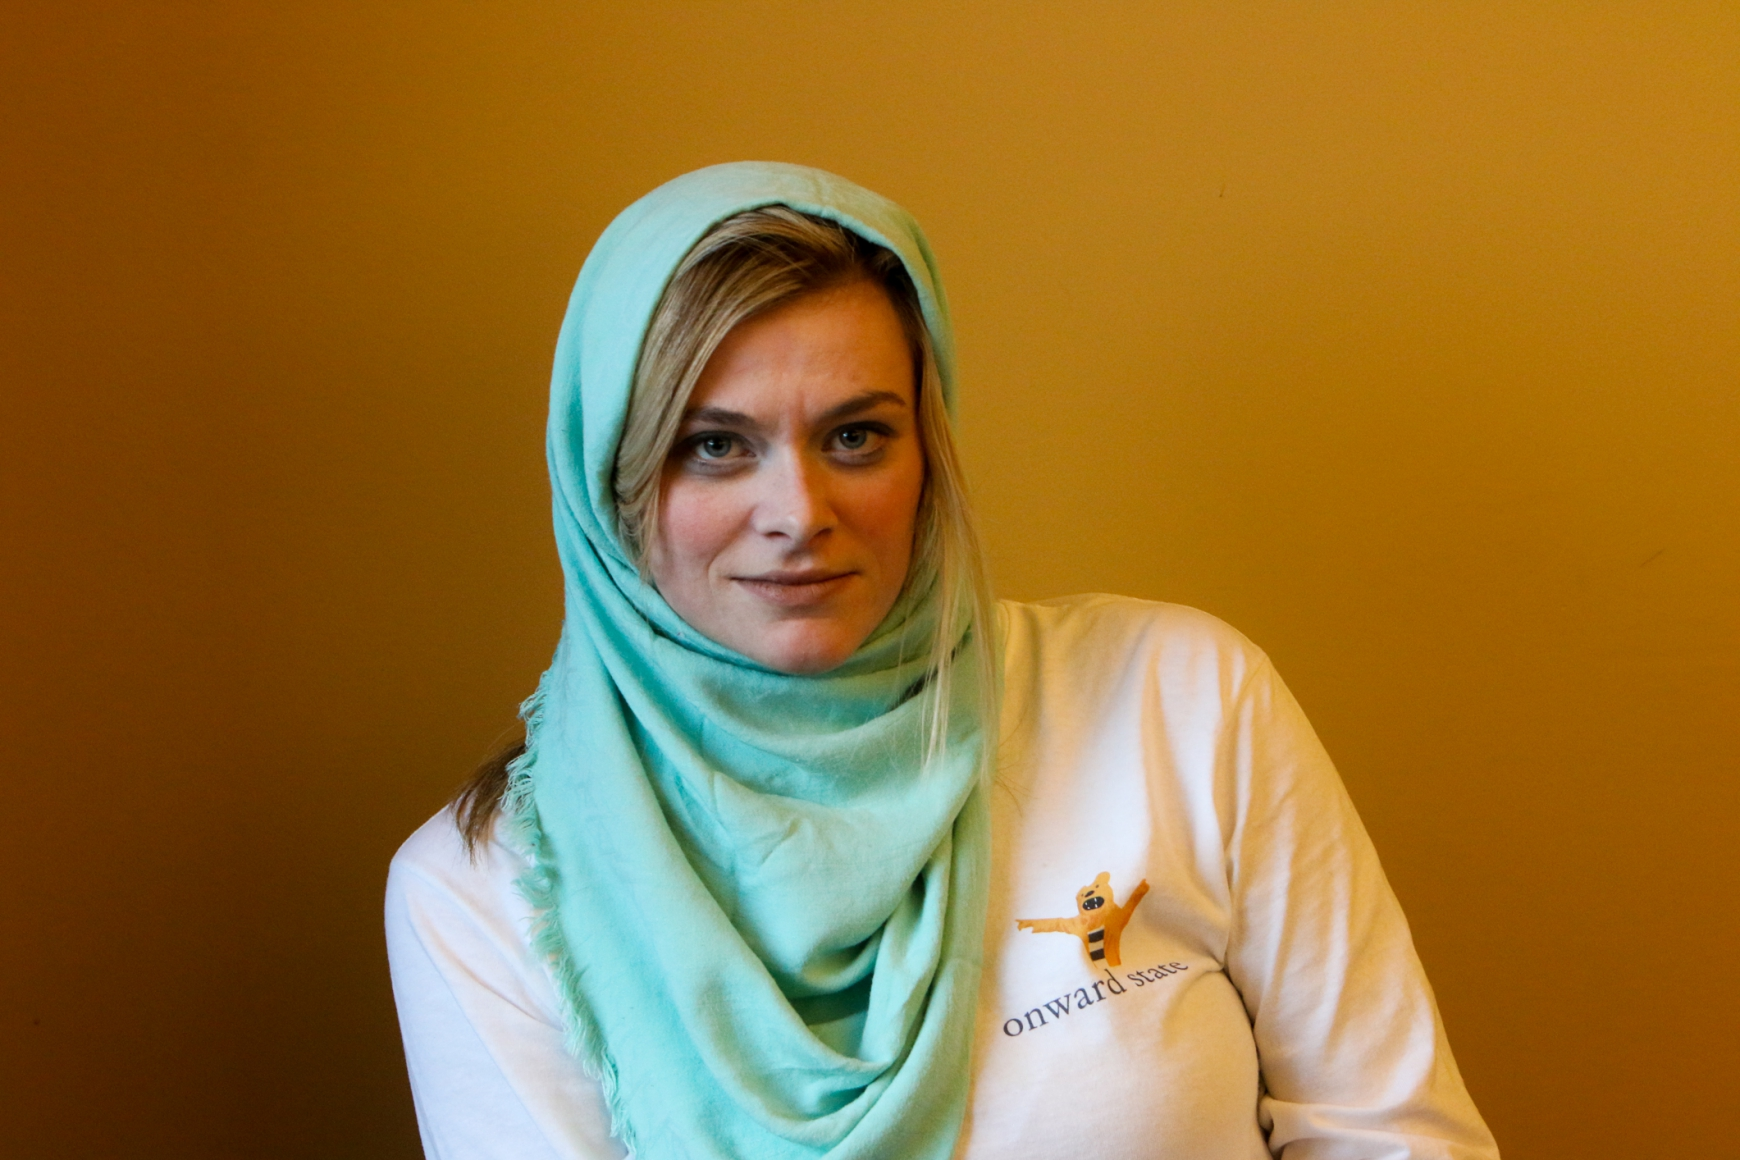 penn yan single muslim girls The penn yan resident and keuka college official is honored for her dedication to serving her community  women and men energetically engaged in the art of leading .